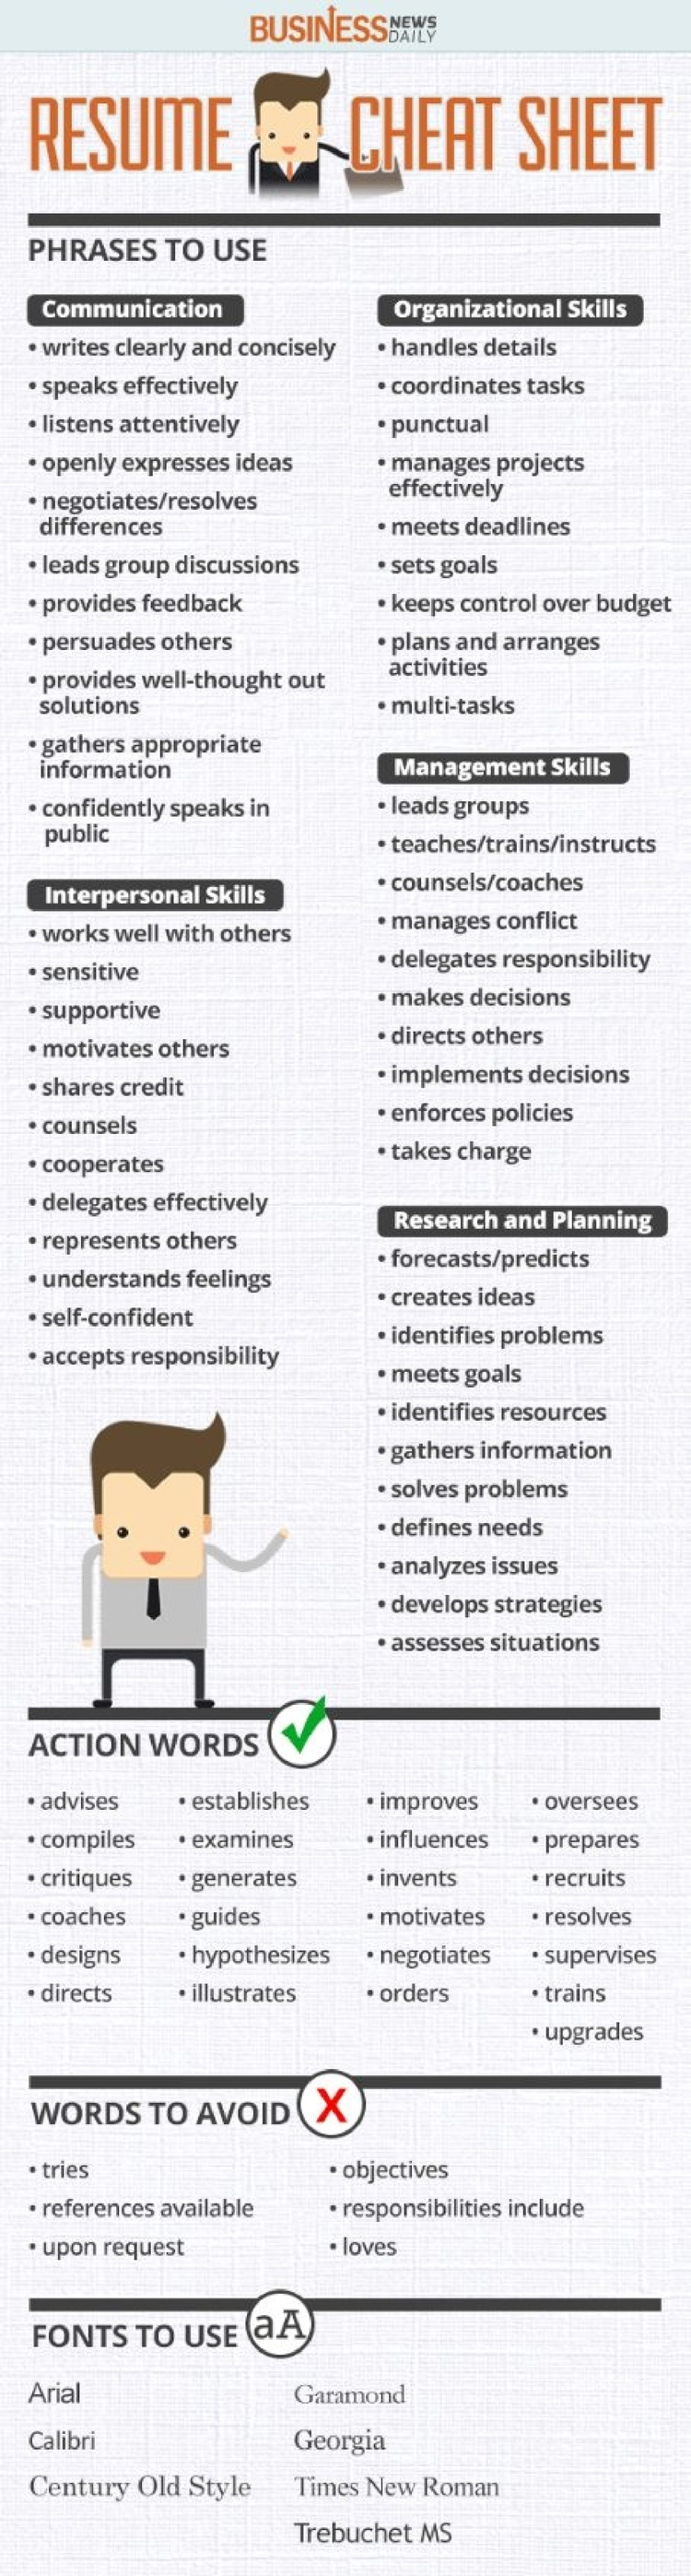 Resume Cheat Sheet by Cheatography Download free from